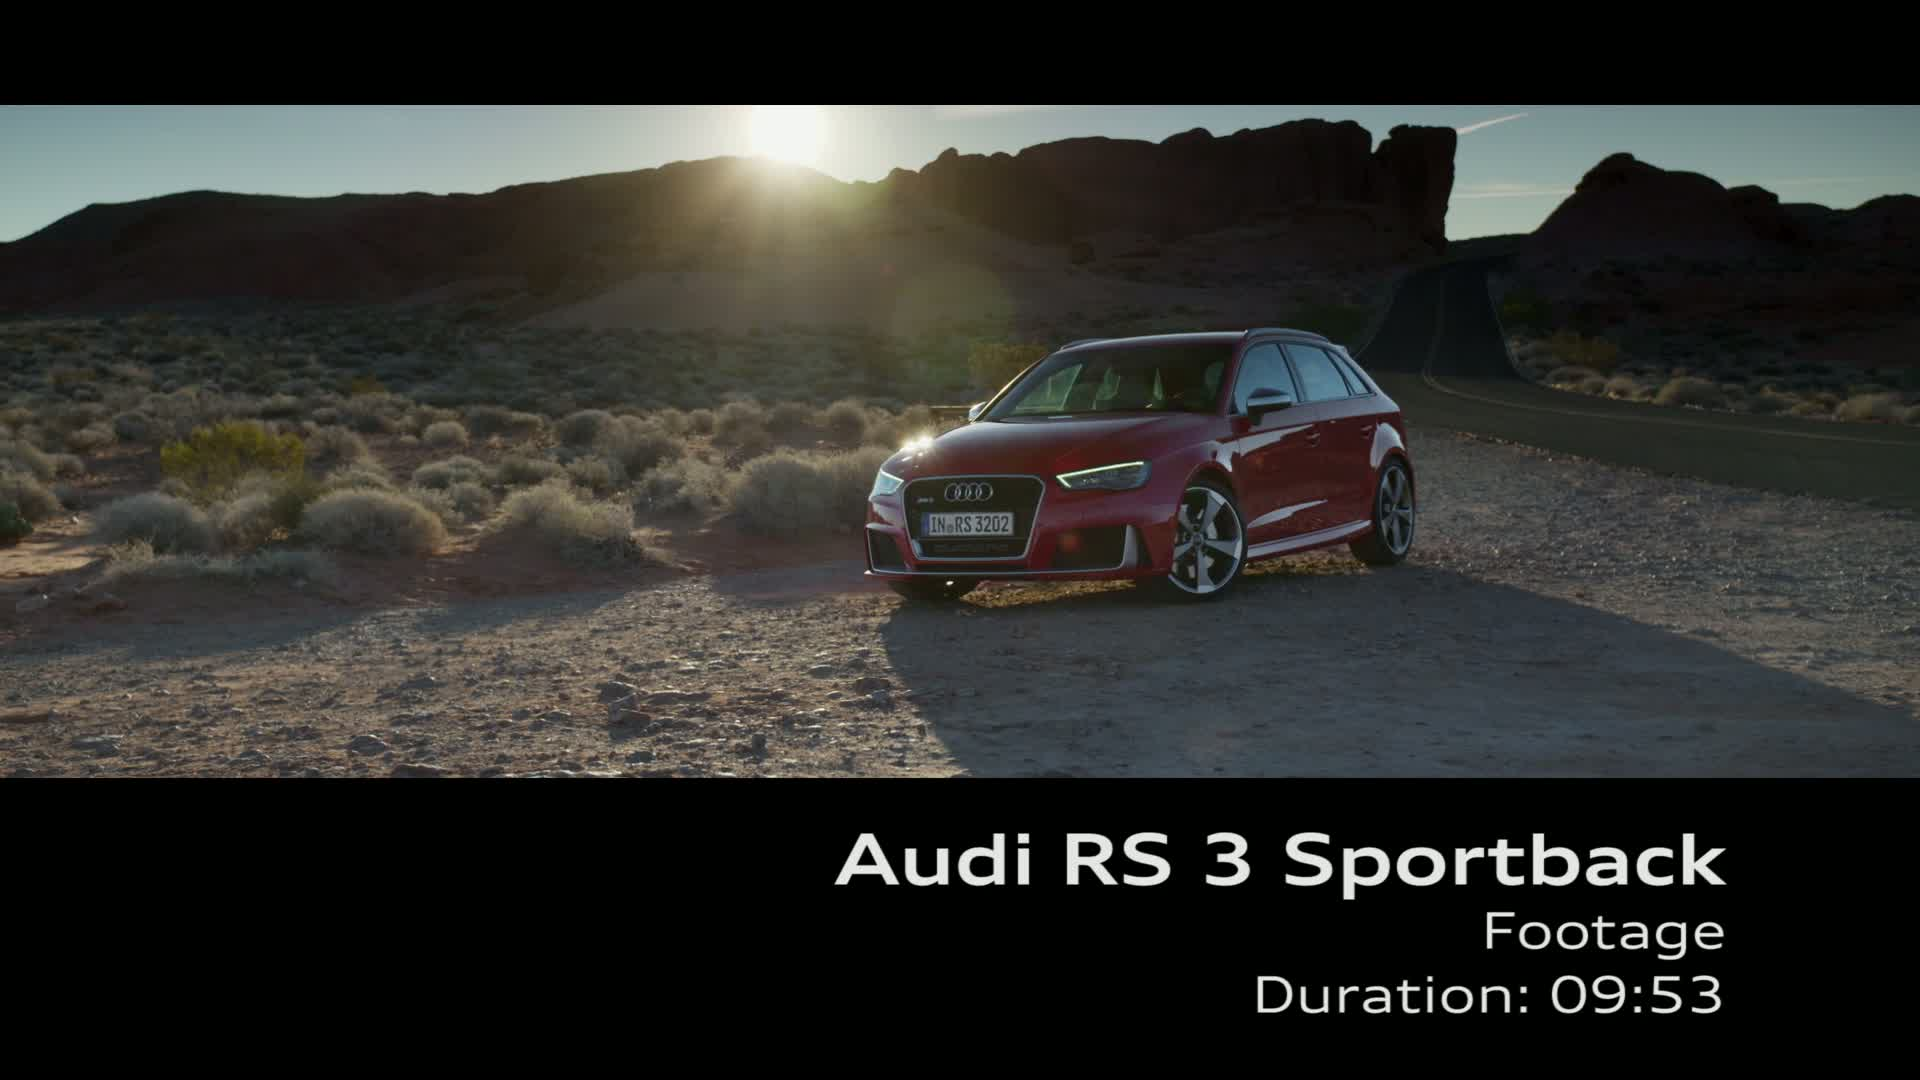 The Audi RS 3 Sportback - Footage desert